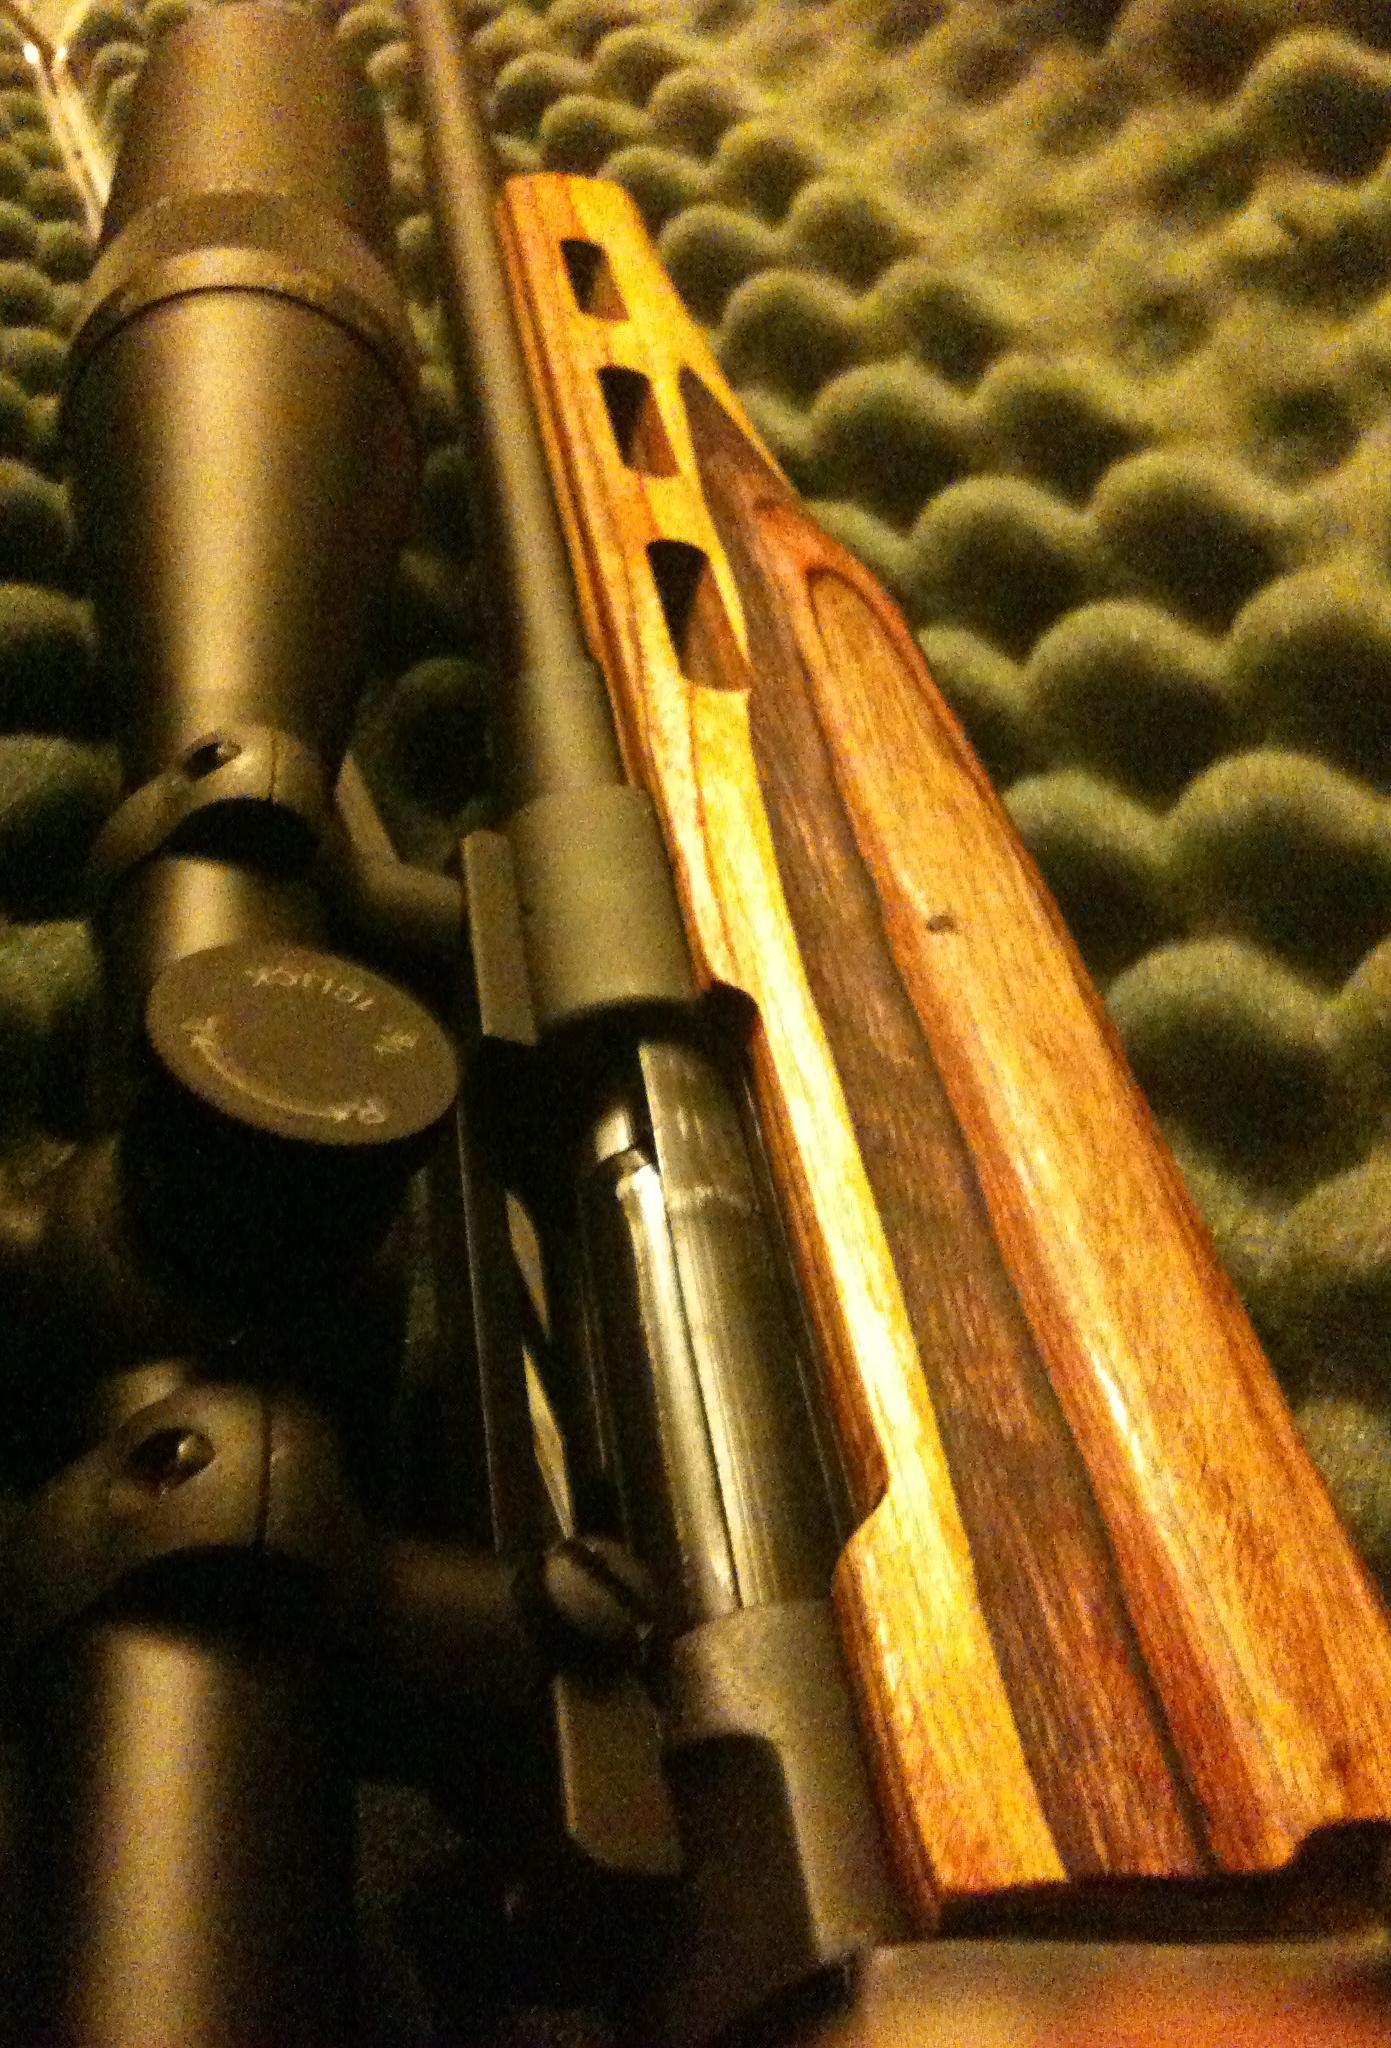 Custom 8mm Mauser target rifle .323 hand built - REDUCED  Guns > Rifles > Custom Rifles > Bolt Action